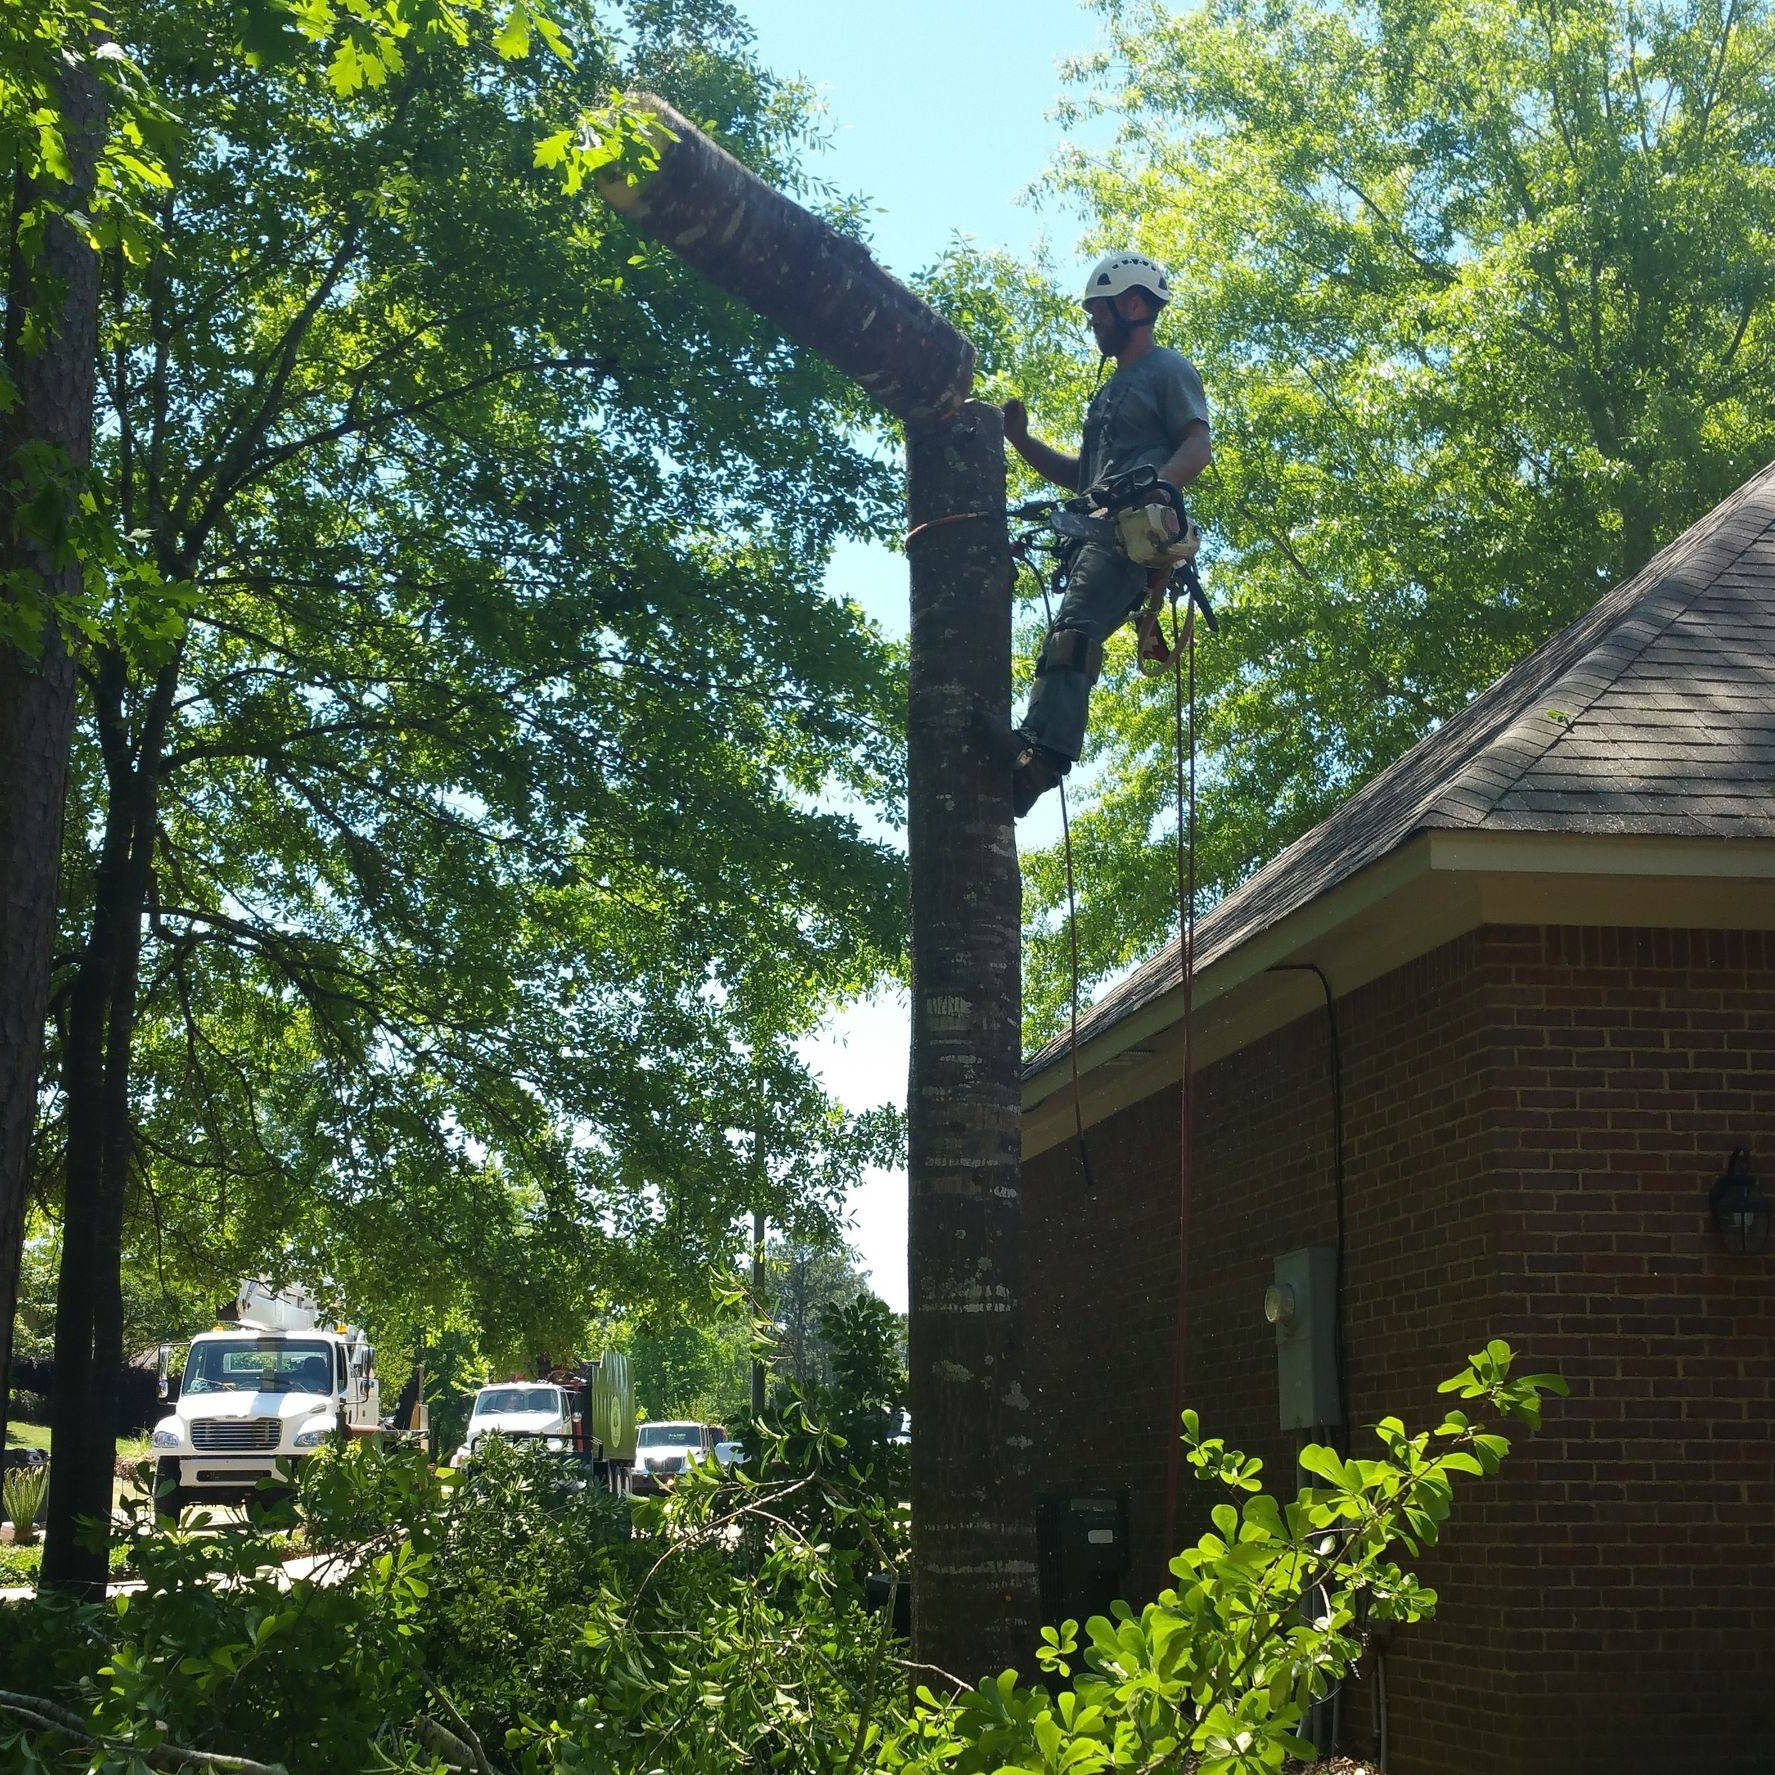 barone stree pros worker climbing tree